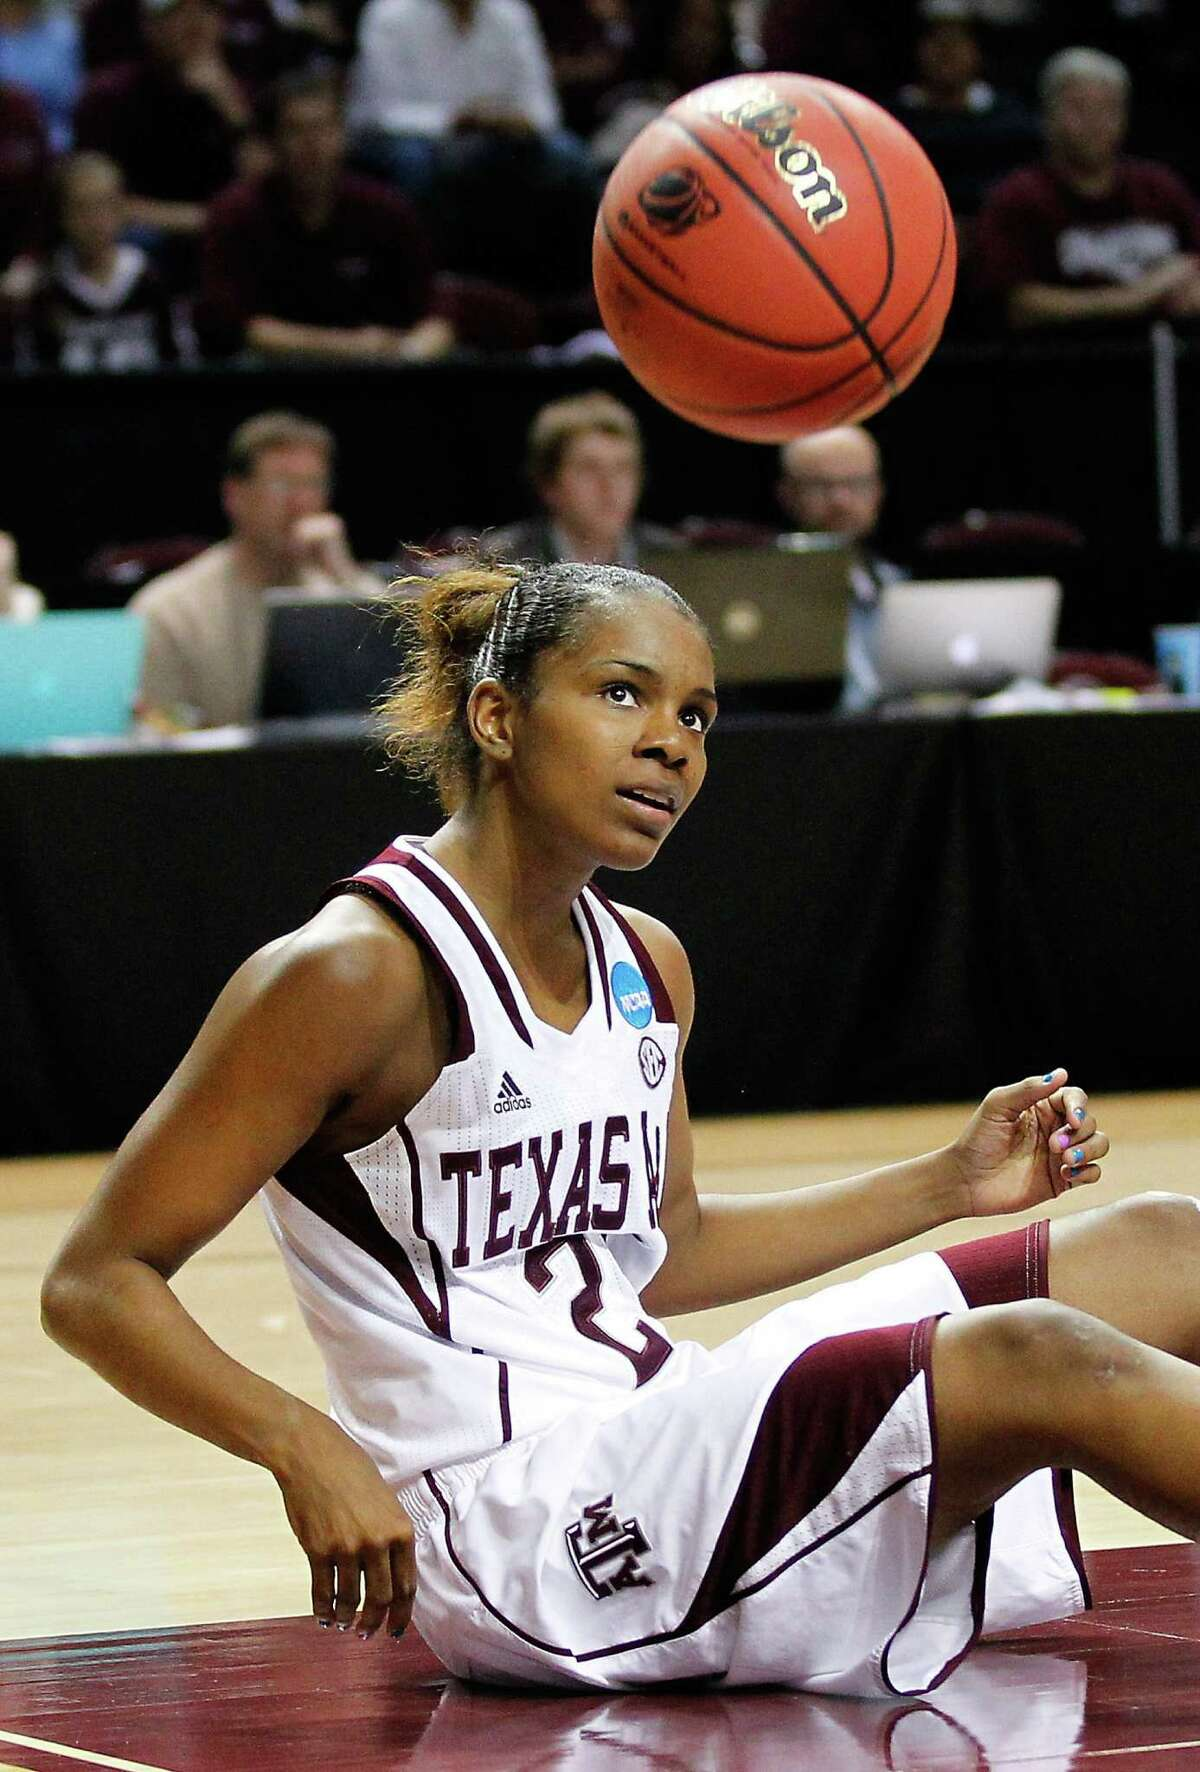 Texas A&M's Cierra Windham pounds the ball in frustration after struggling to call a timeout.